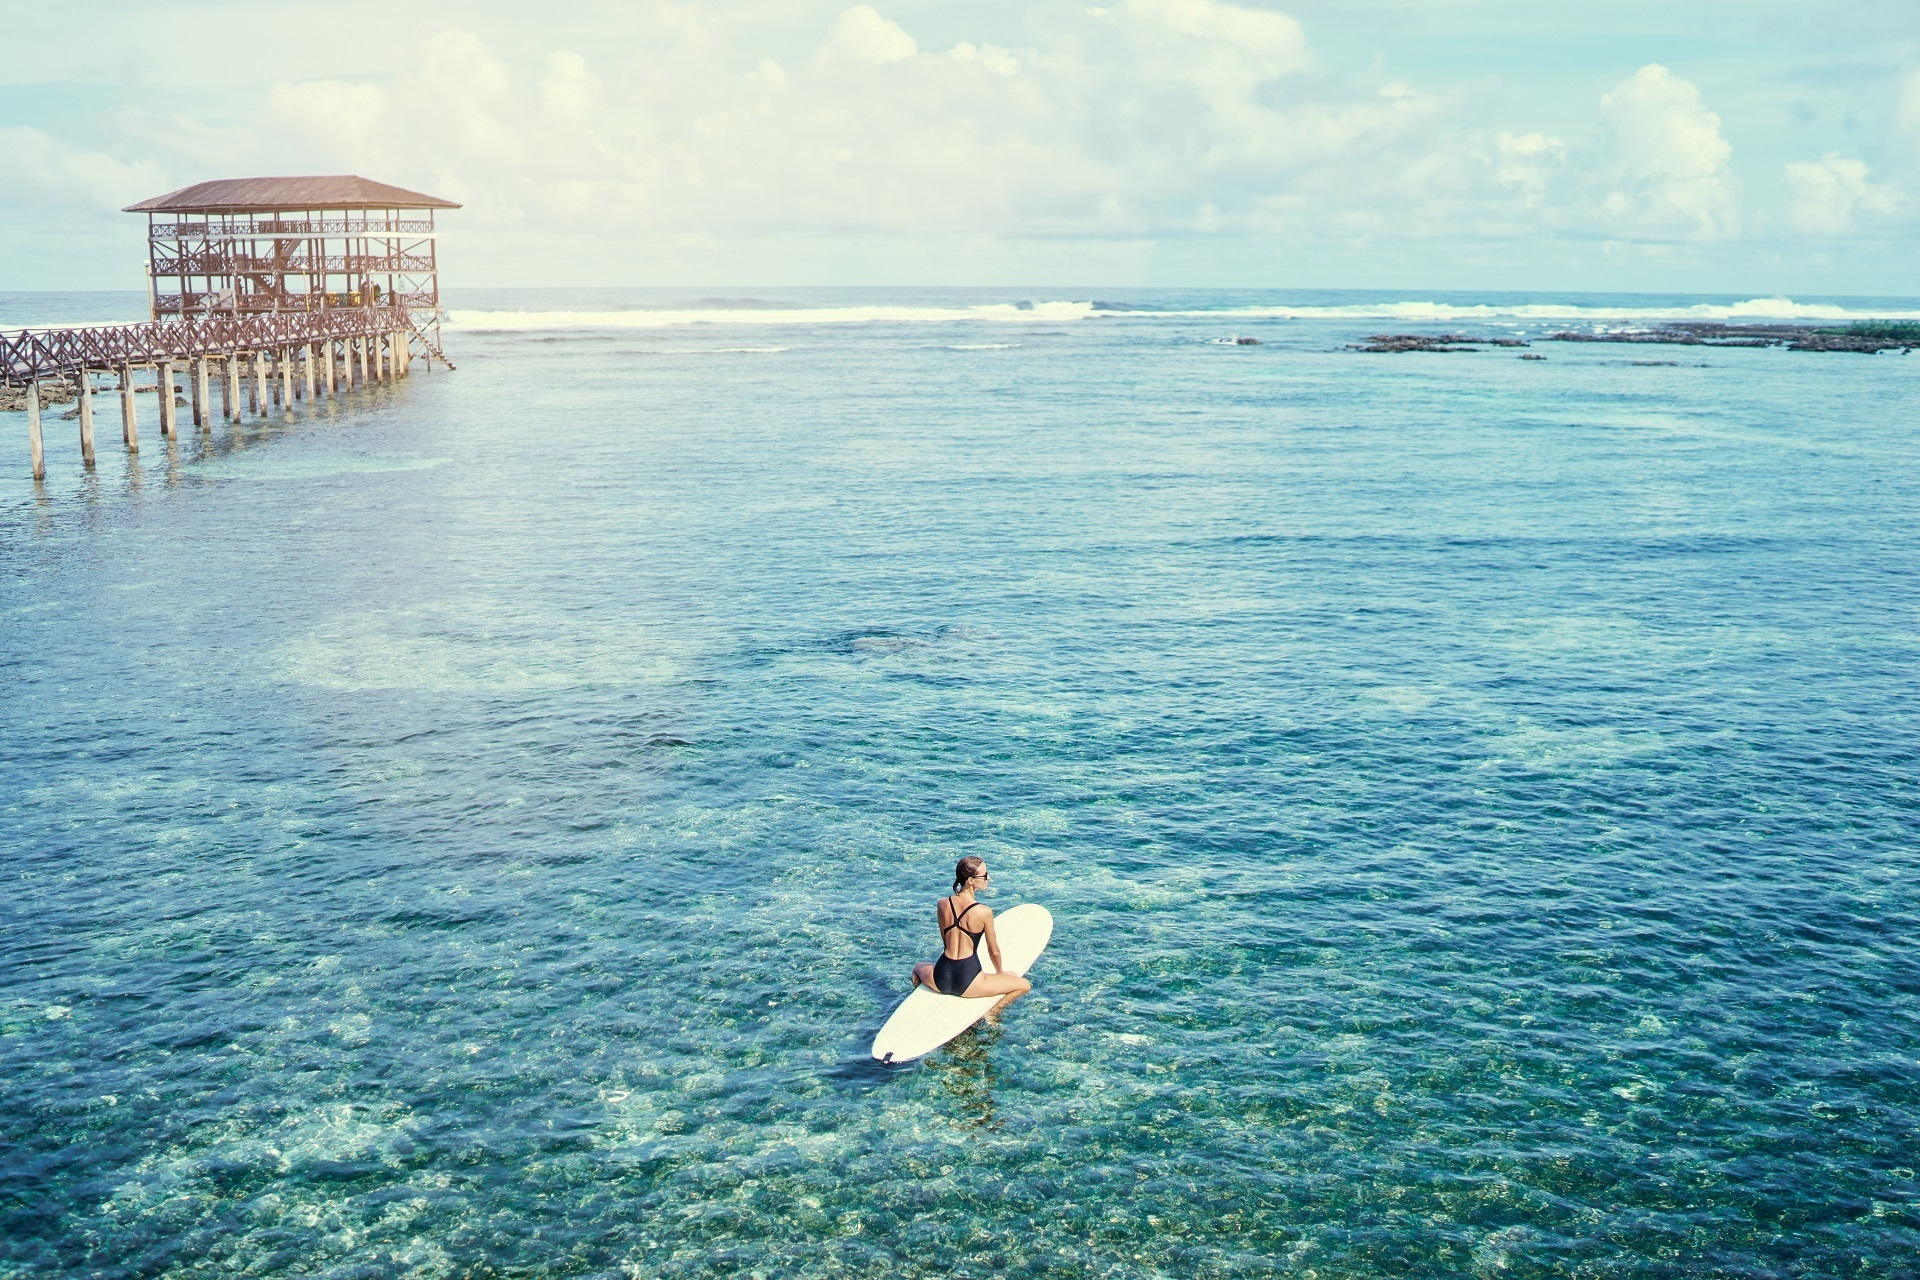 Cloud 9: Der Surfhotspot auf Siargao Island in den Philippinen